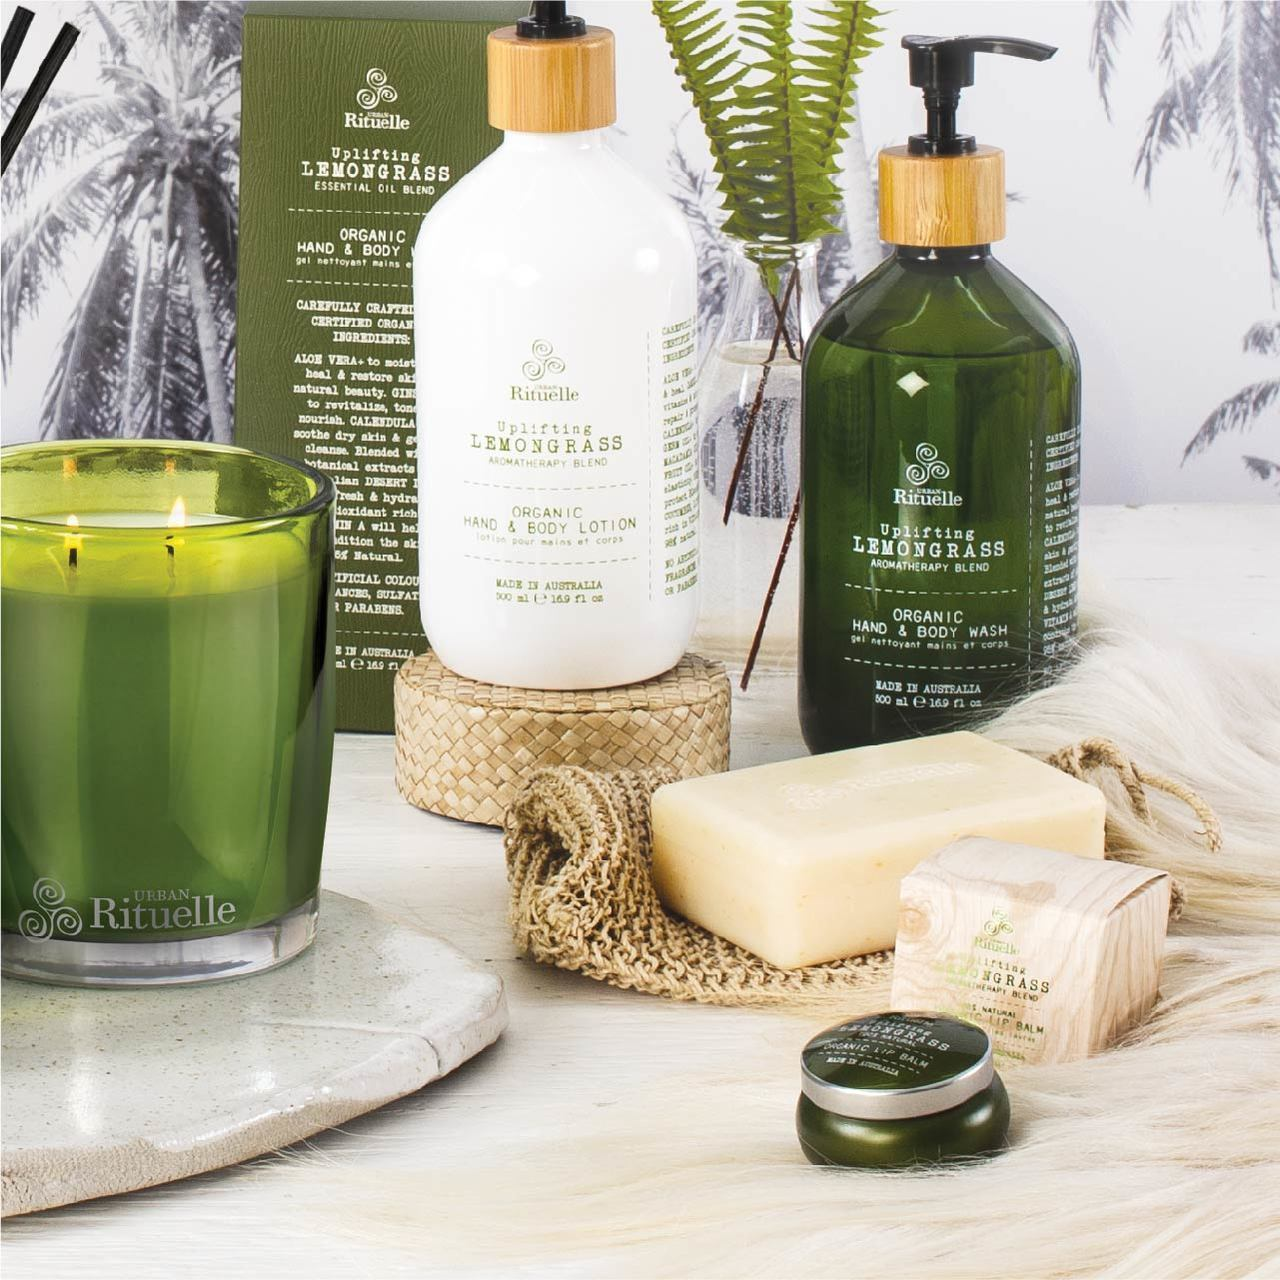 Urban Rituelle Flourish Organics Lemongrass, Lemon Myrtle, Grapefruit & Eucalyptus Organic Hand & Body Lotion Hand and Body Lotion Urban Rituelle